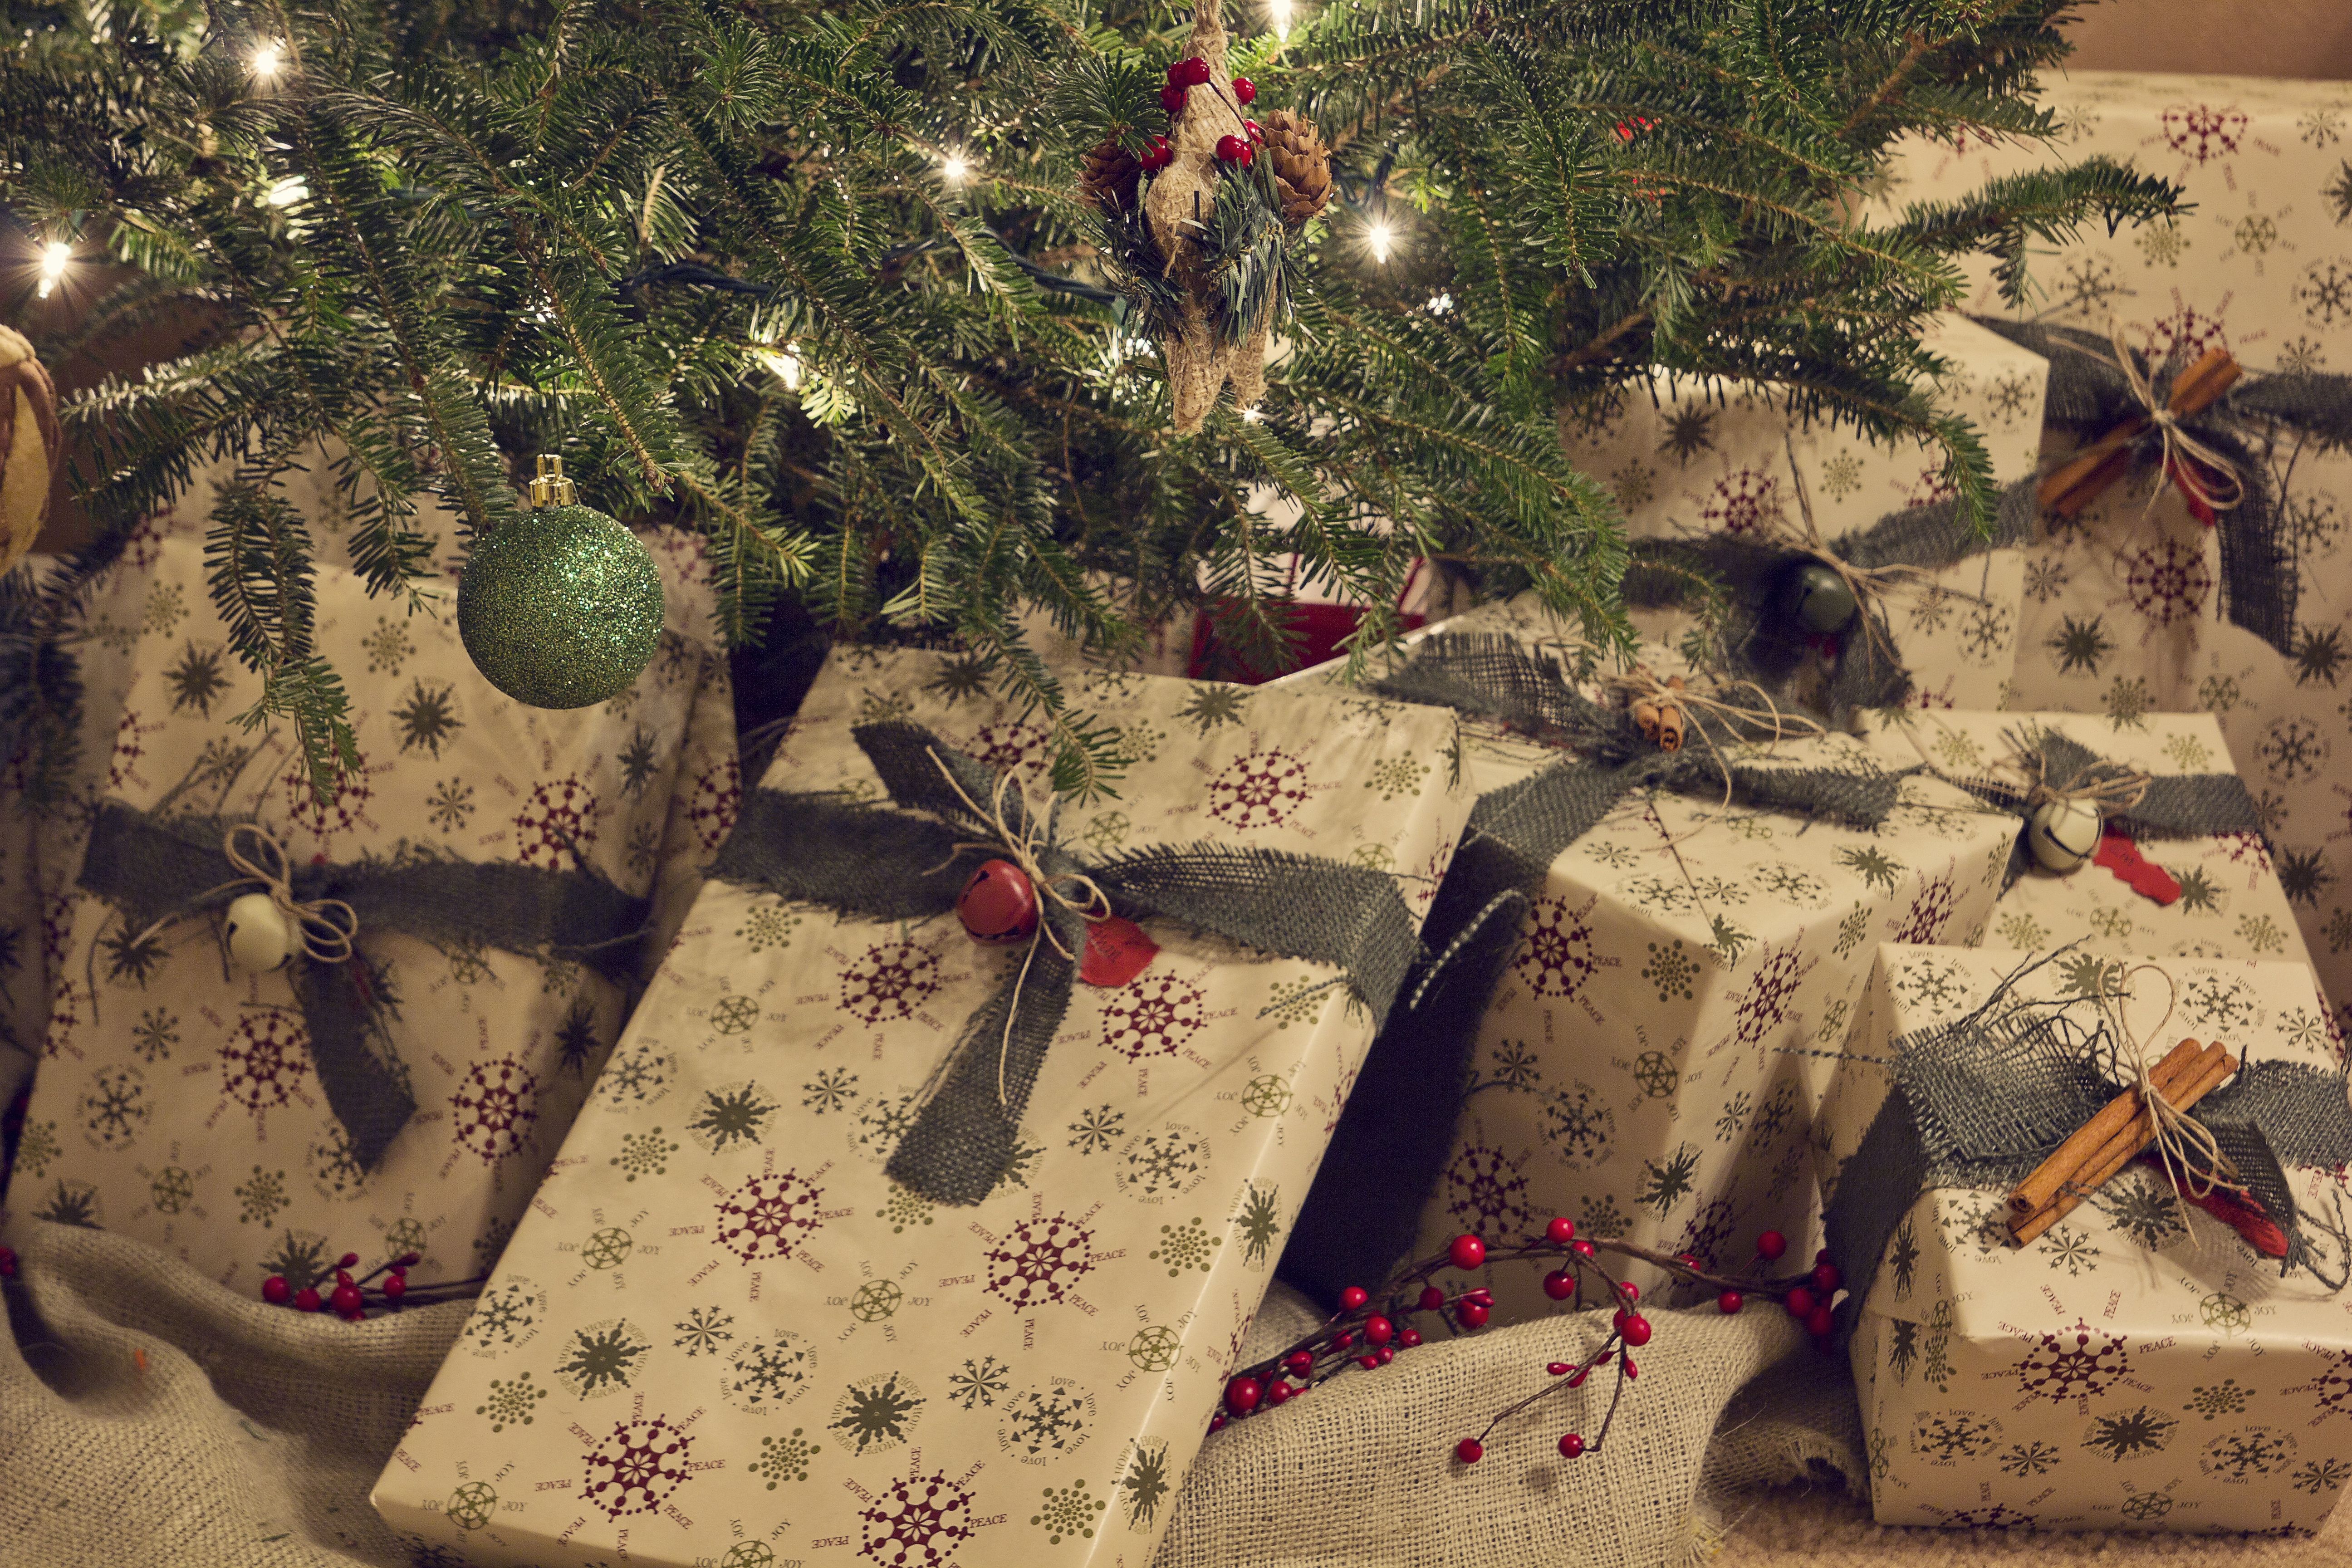 Gift Giving to Others 12/20/15 - Living Well Church of the